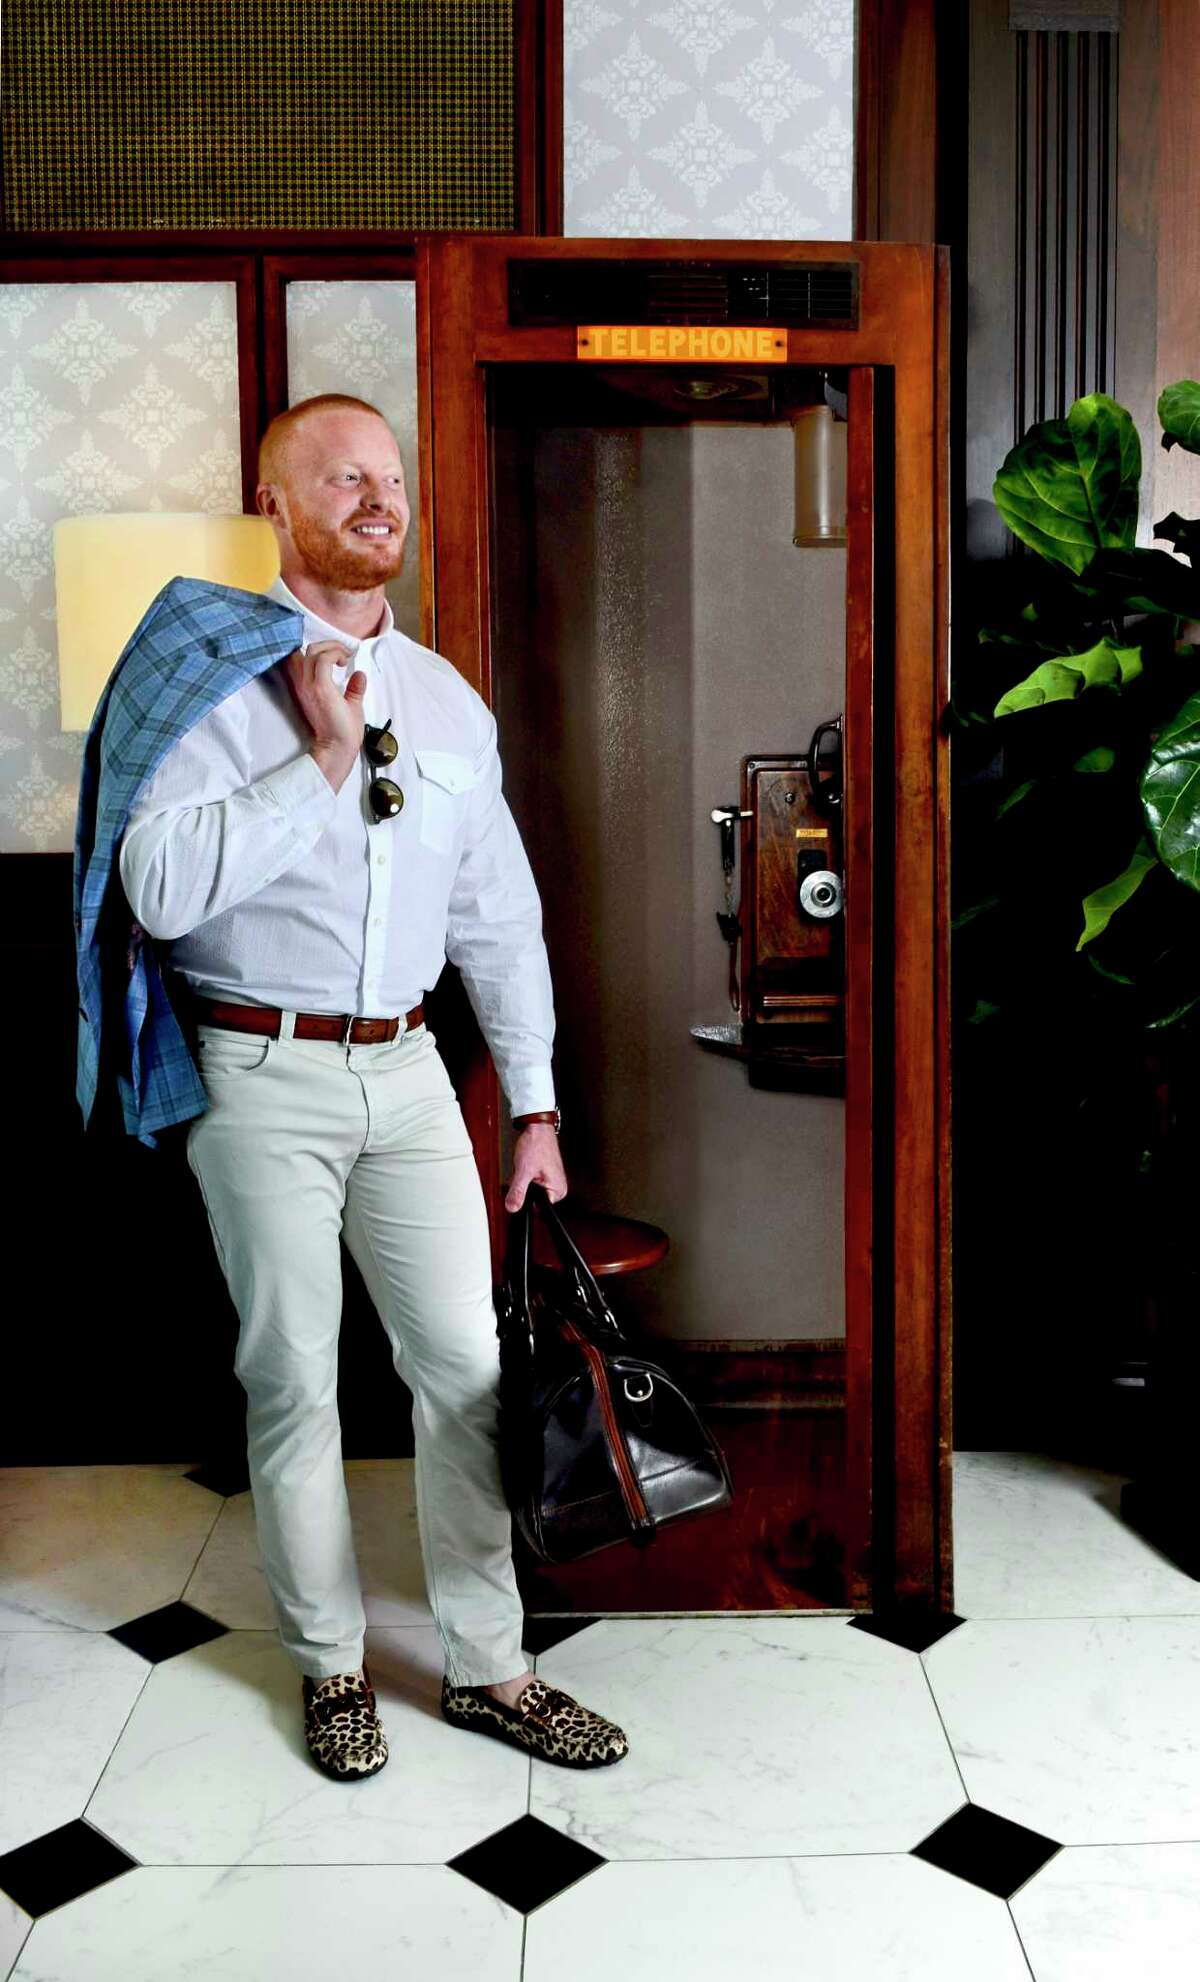 Danilo Stewart poses during a fashion shoot at The Adelphi in Saratoga Springs, N.Y., on Tuesday, June 19, 2018. Clothing and accessories from The National in Saratoga Springs. National custom label sport coat; a Forrest Lennard shirt; Bugatchi Uomo chinos; Martin Dingman shoes, belt and duffel; Peter Millar sunglasses; and a Daniel Wellington watch. (Photo by Colleen Ingerto / Times Union)